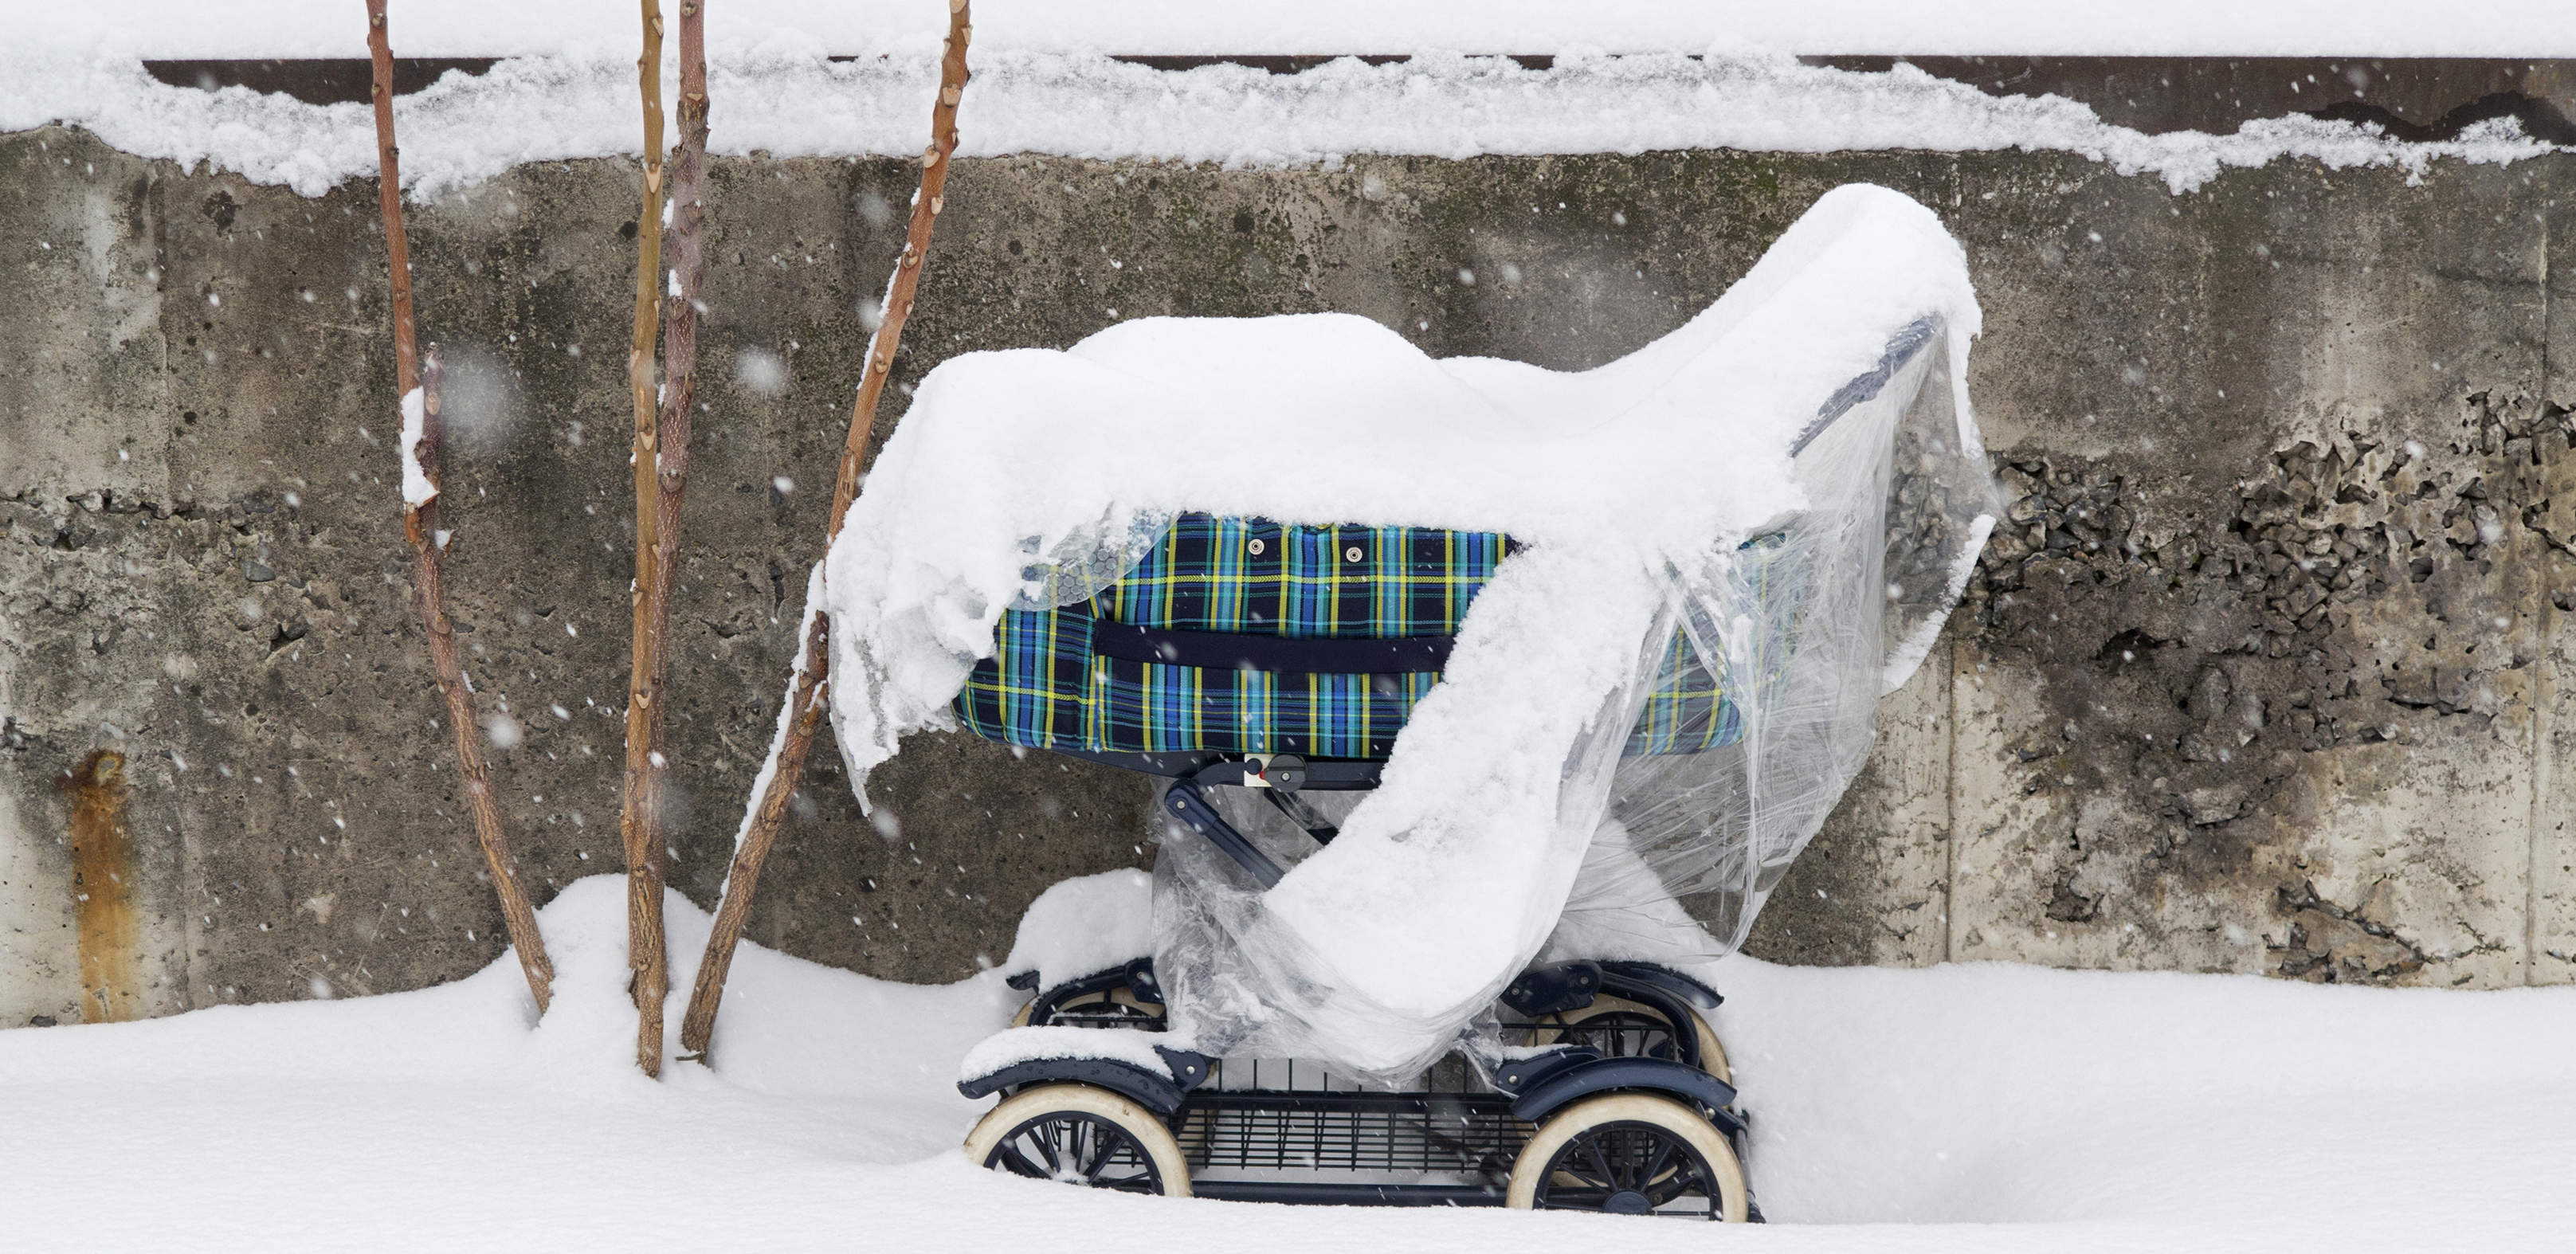 Weatherproof Baby - imafe of the snowy baby carriage